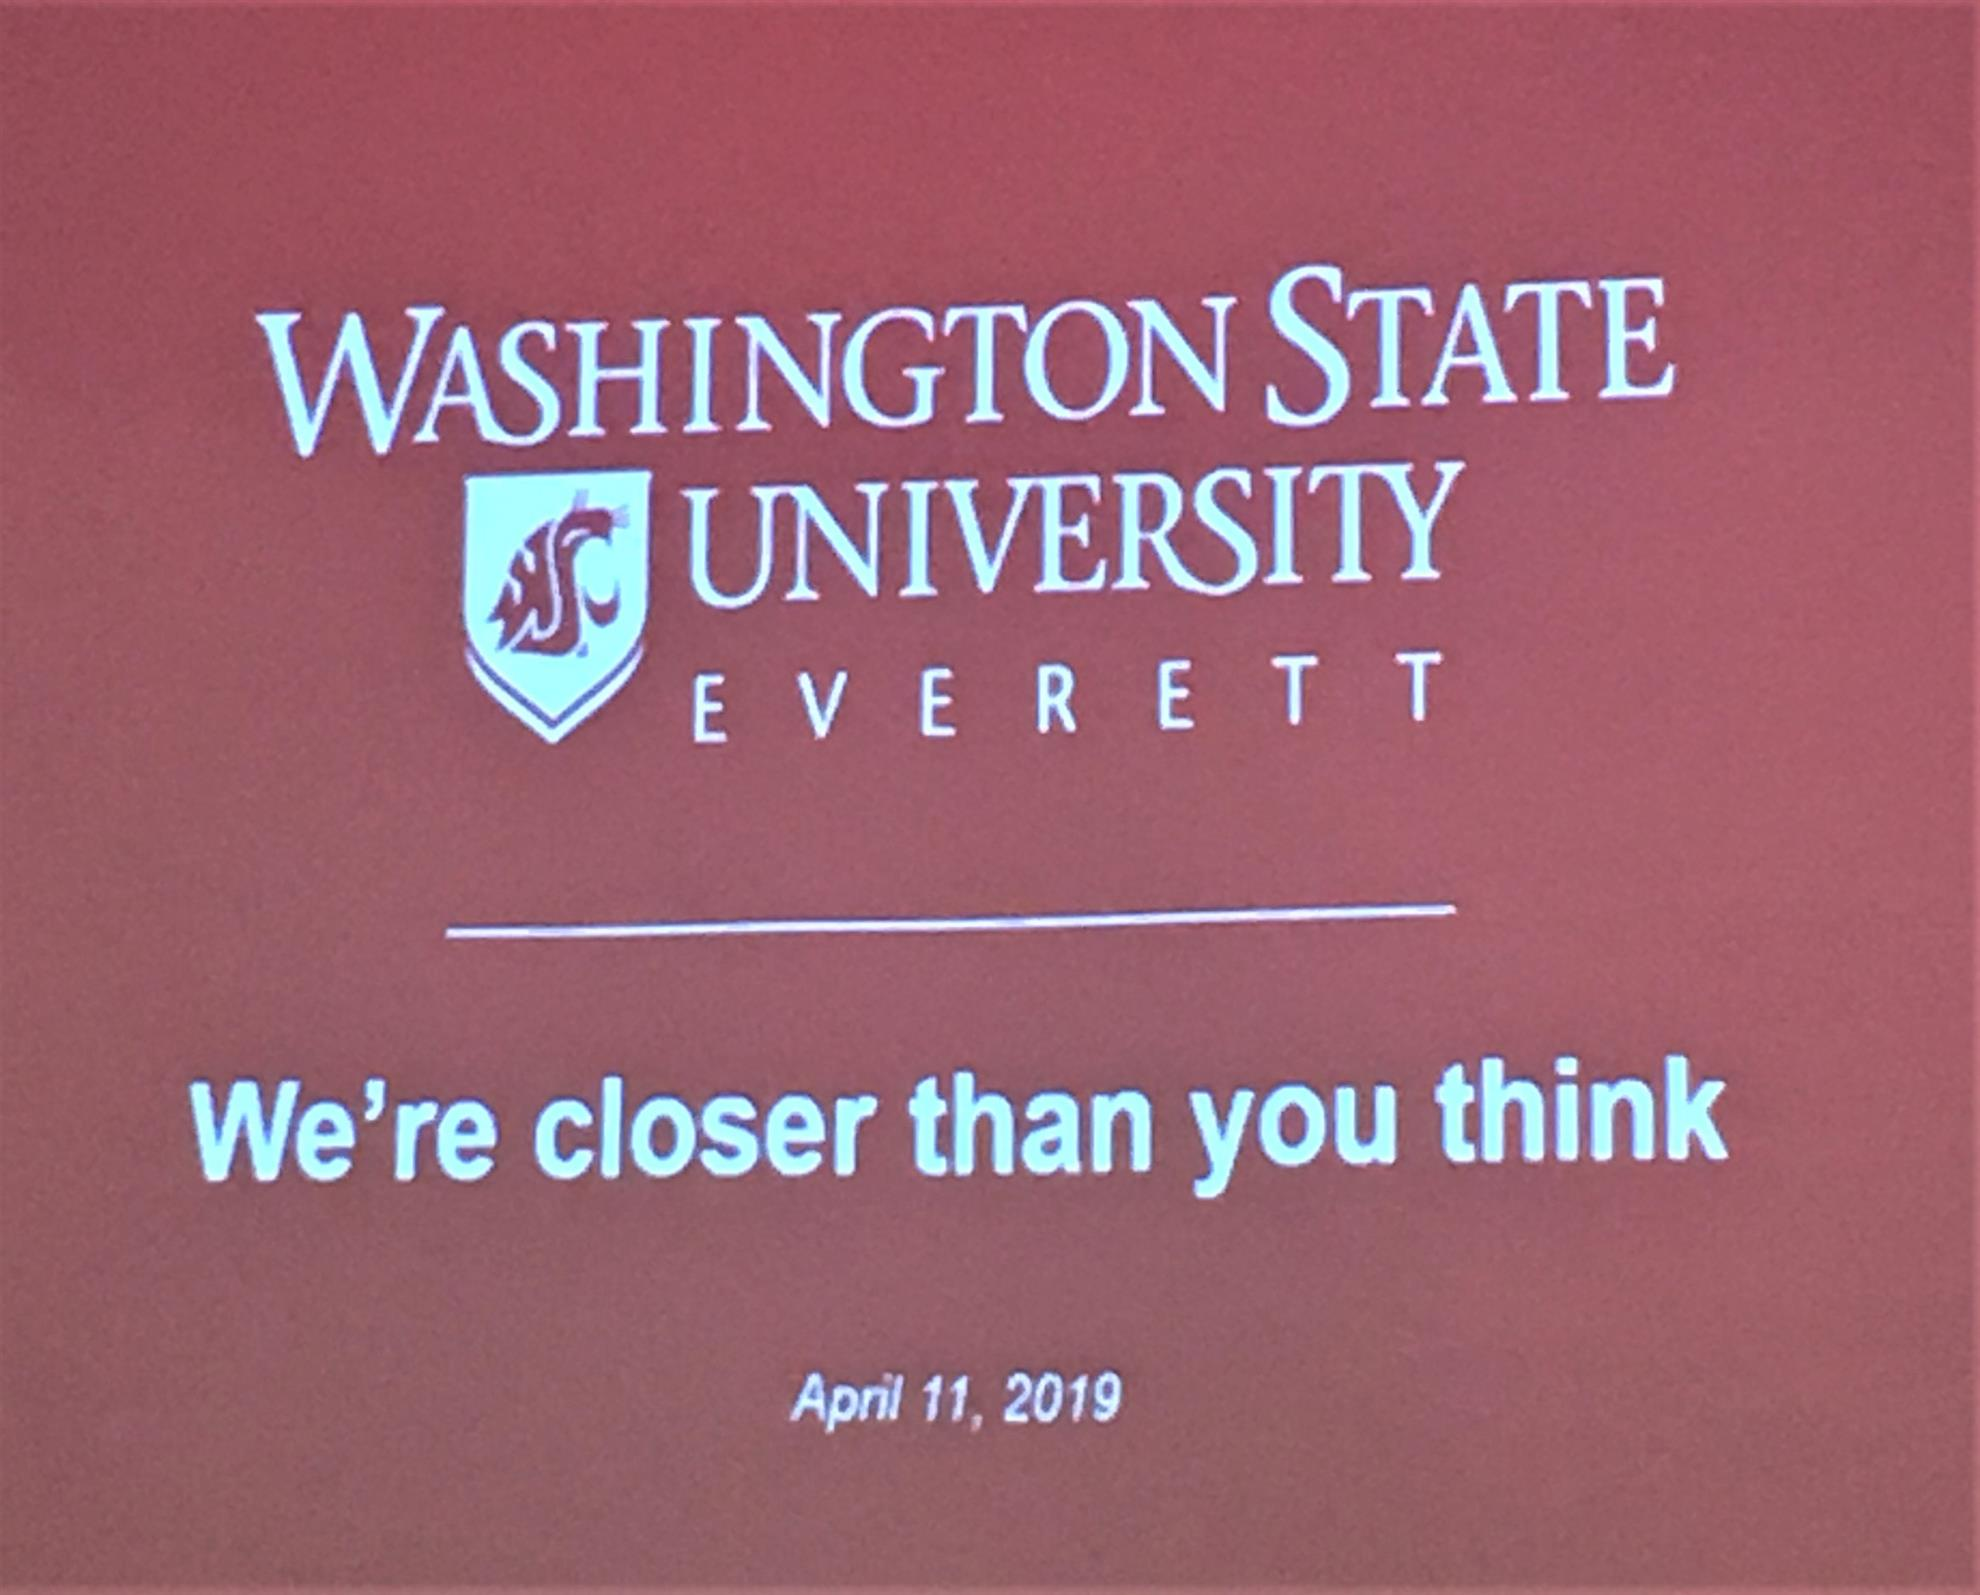 7f2c6eb65 Dr. Paul Pitre, the Chancellor for Washington State University's Everett  was our program on April 11. In addition to being the Chancellor, ...